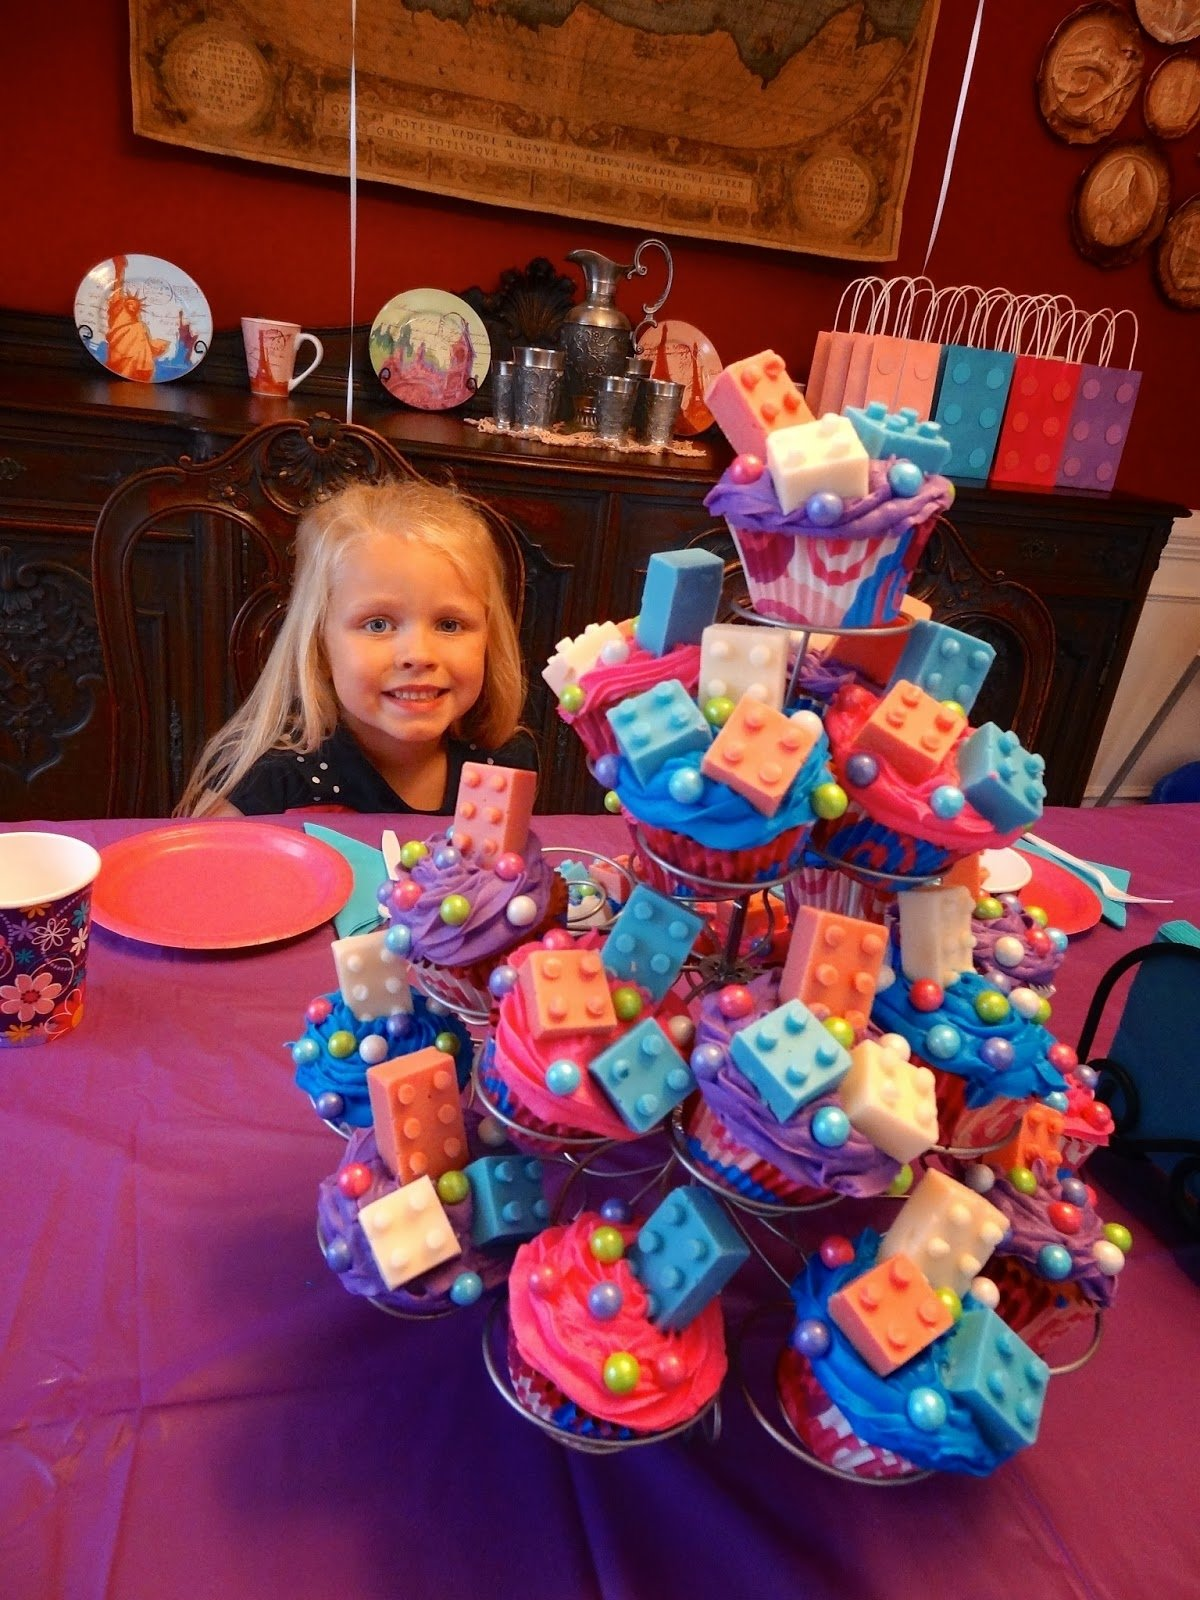 10 Pretty 6Th Birthday Party Ideas For Girls welcome to the krazy kingdom tayas 6th birthday party lego friends 2020